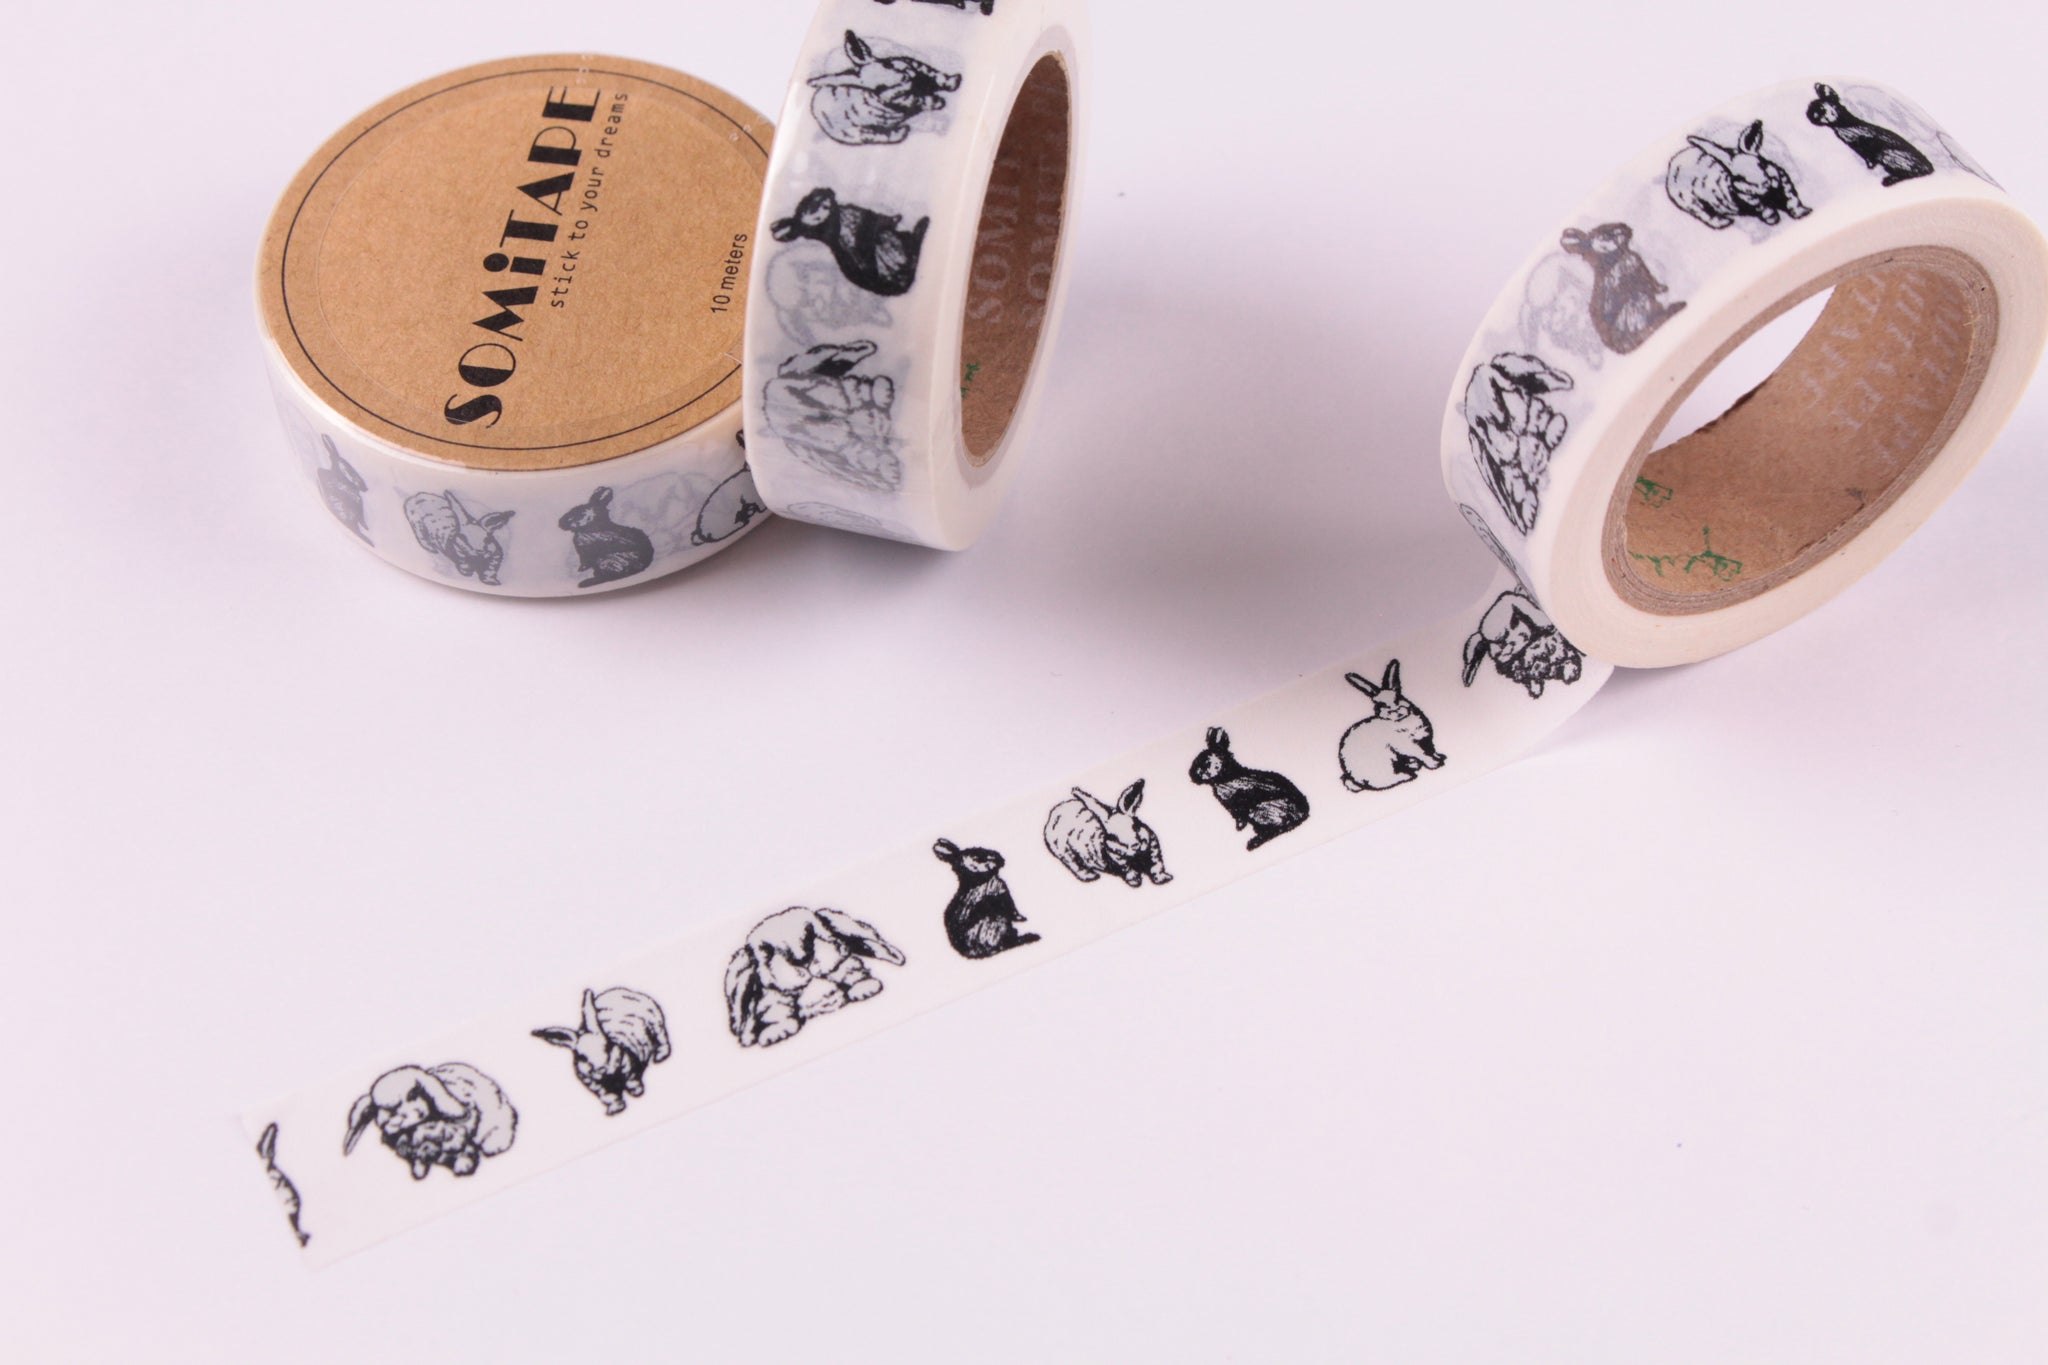 Black Bunnies Washi Tape, Black Rabbits Washi Tape